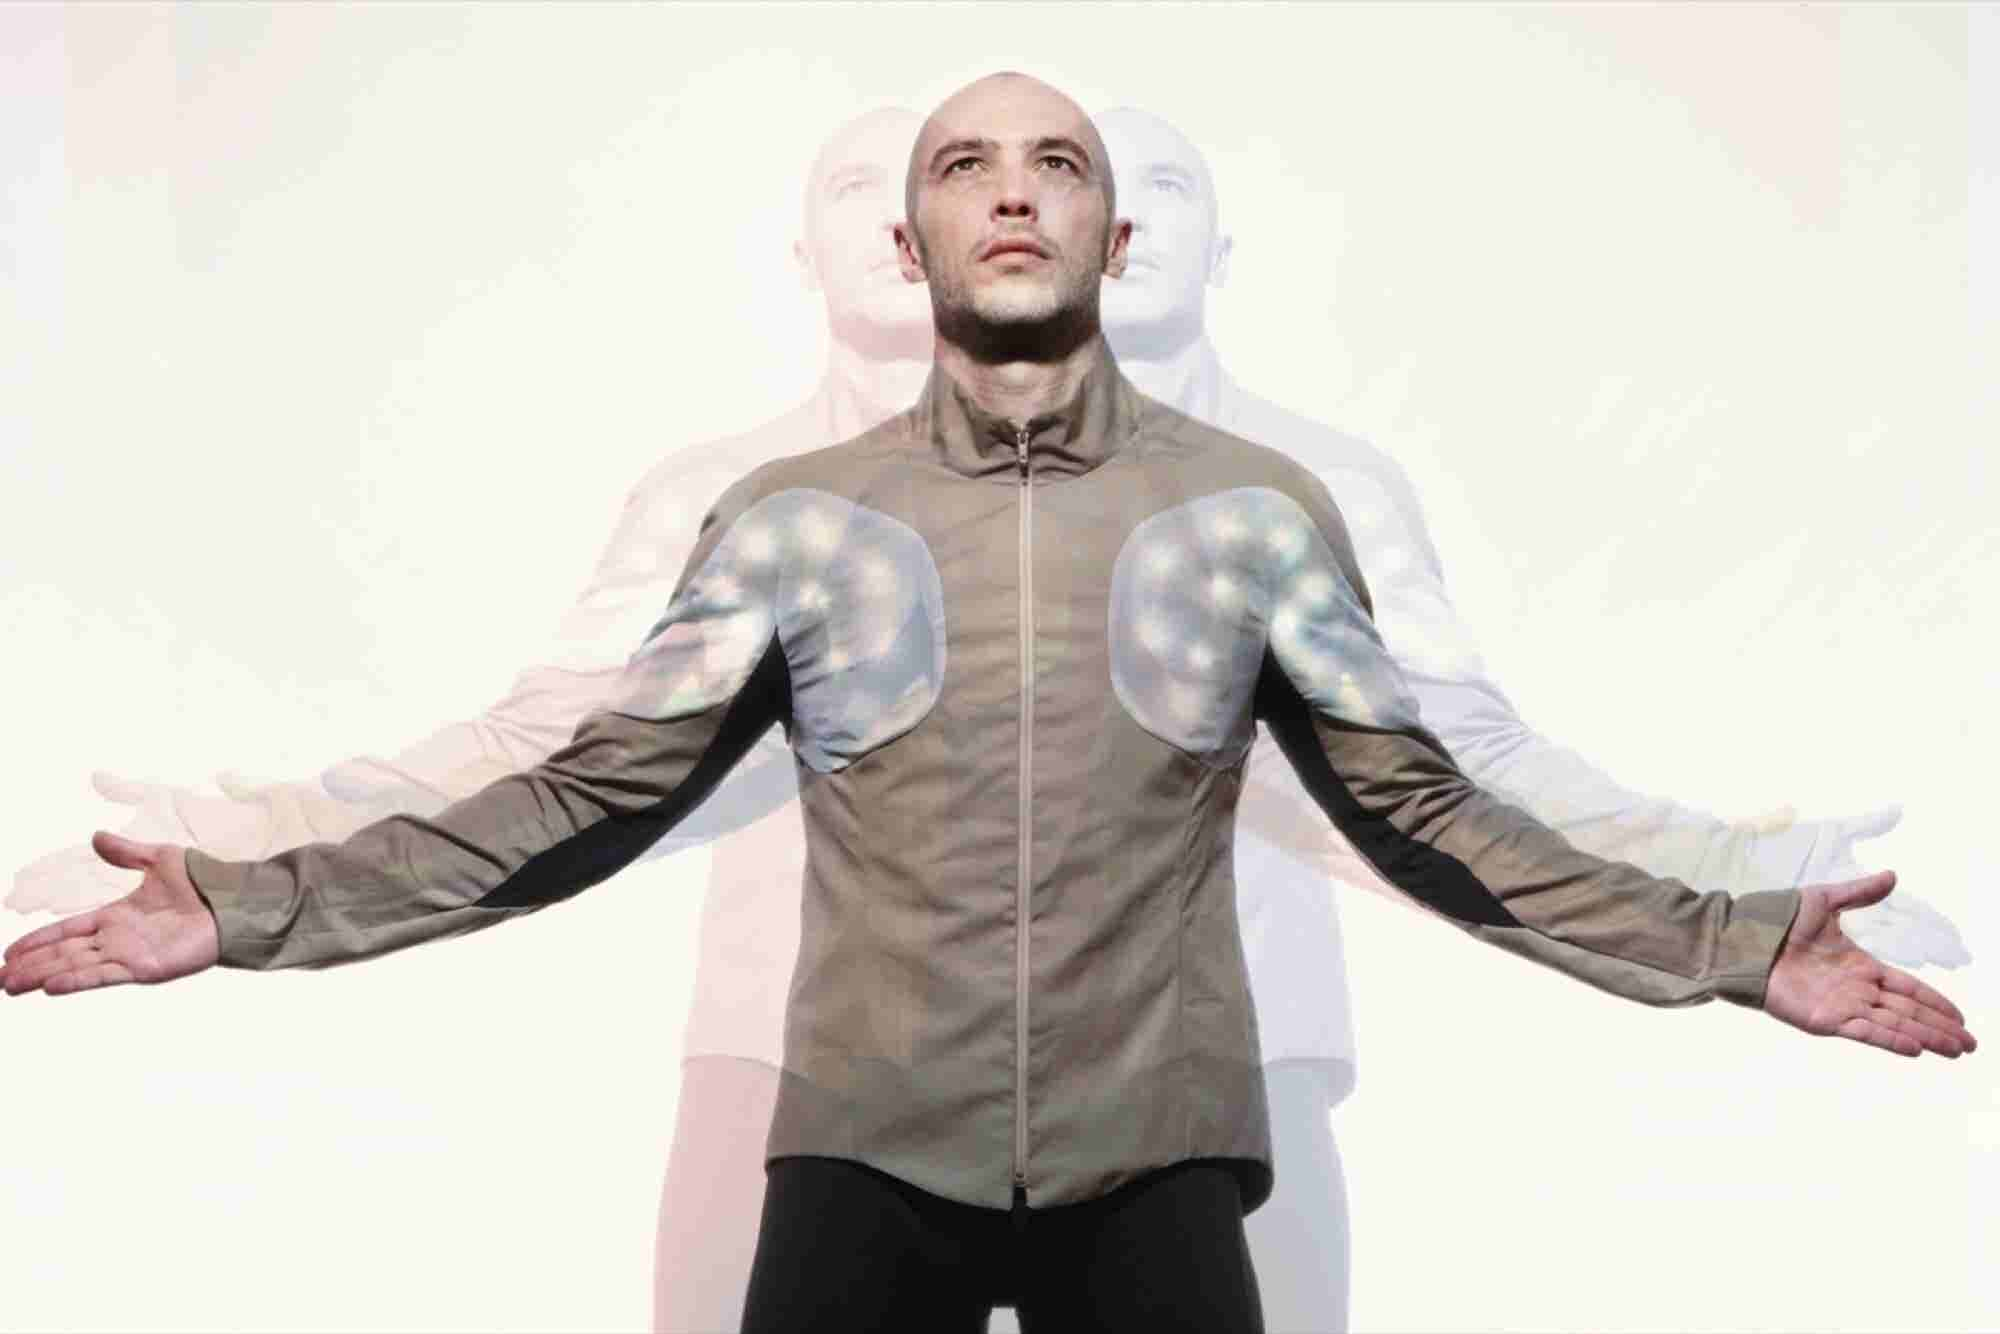 SXSW: Introducing Smart Textiles -- Designers Predict Wearables' Next...